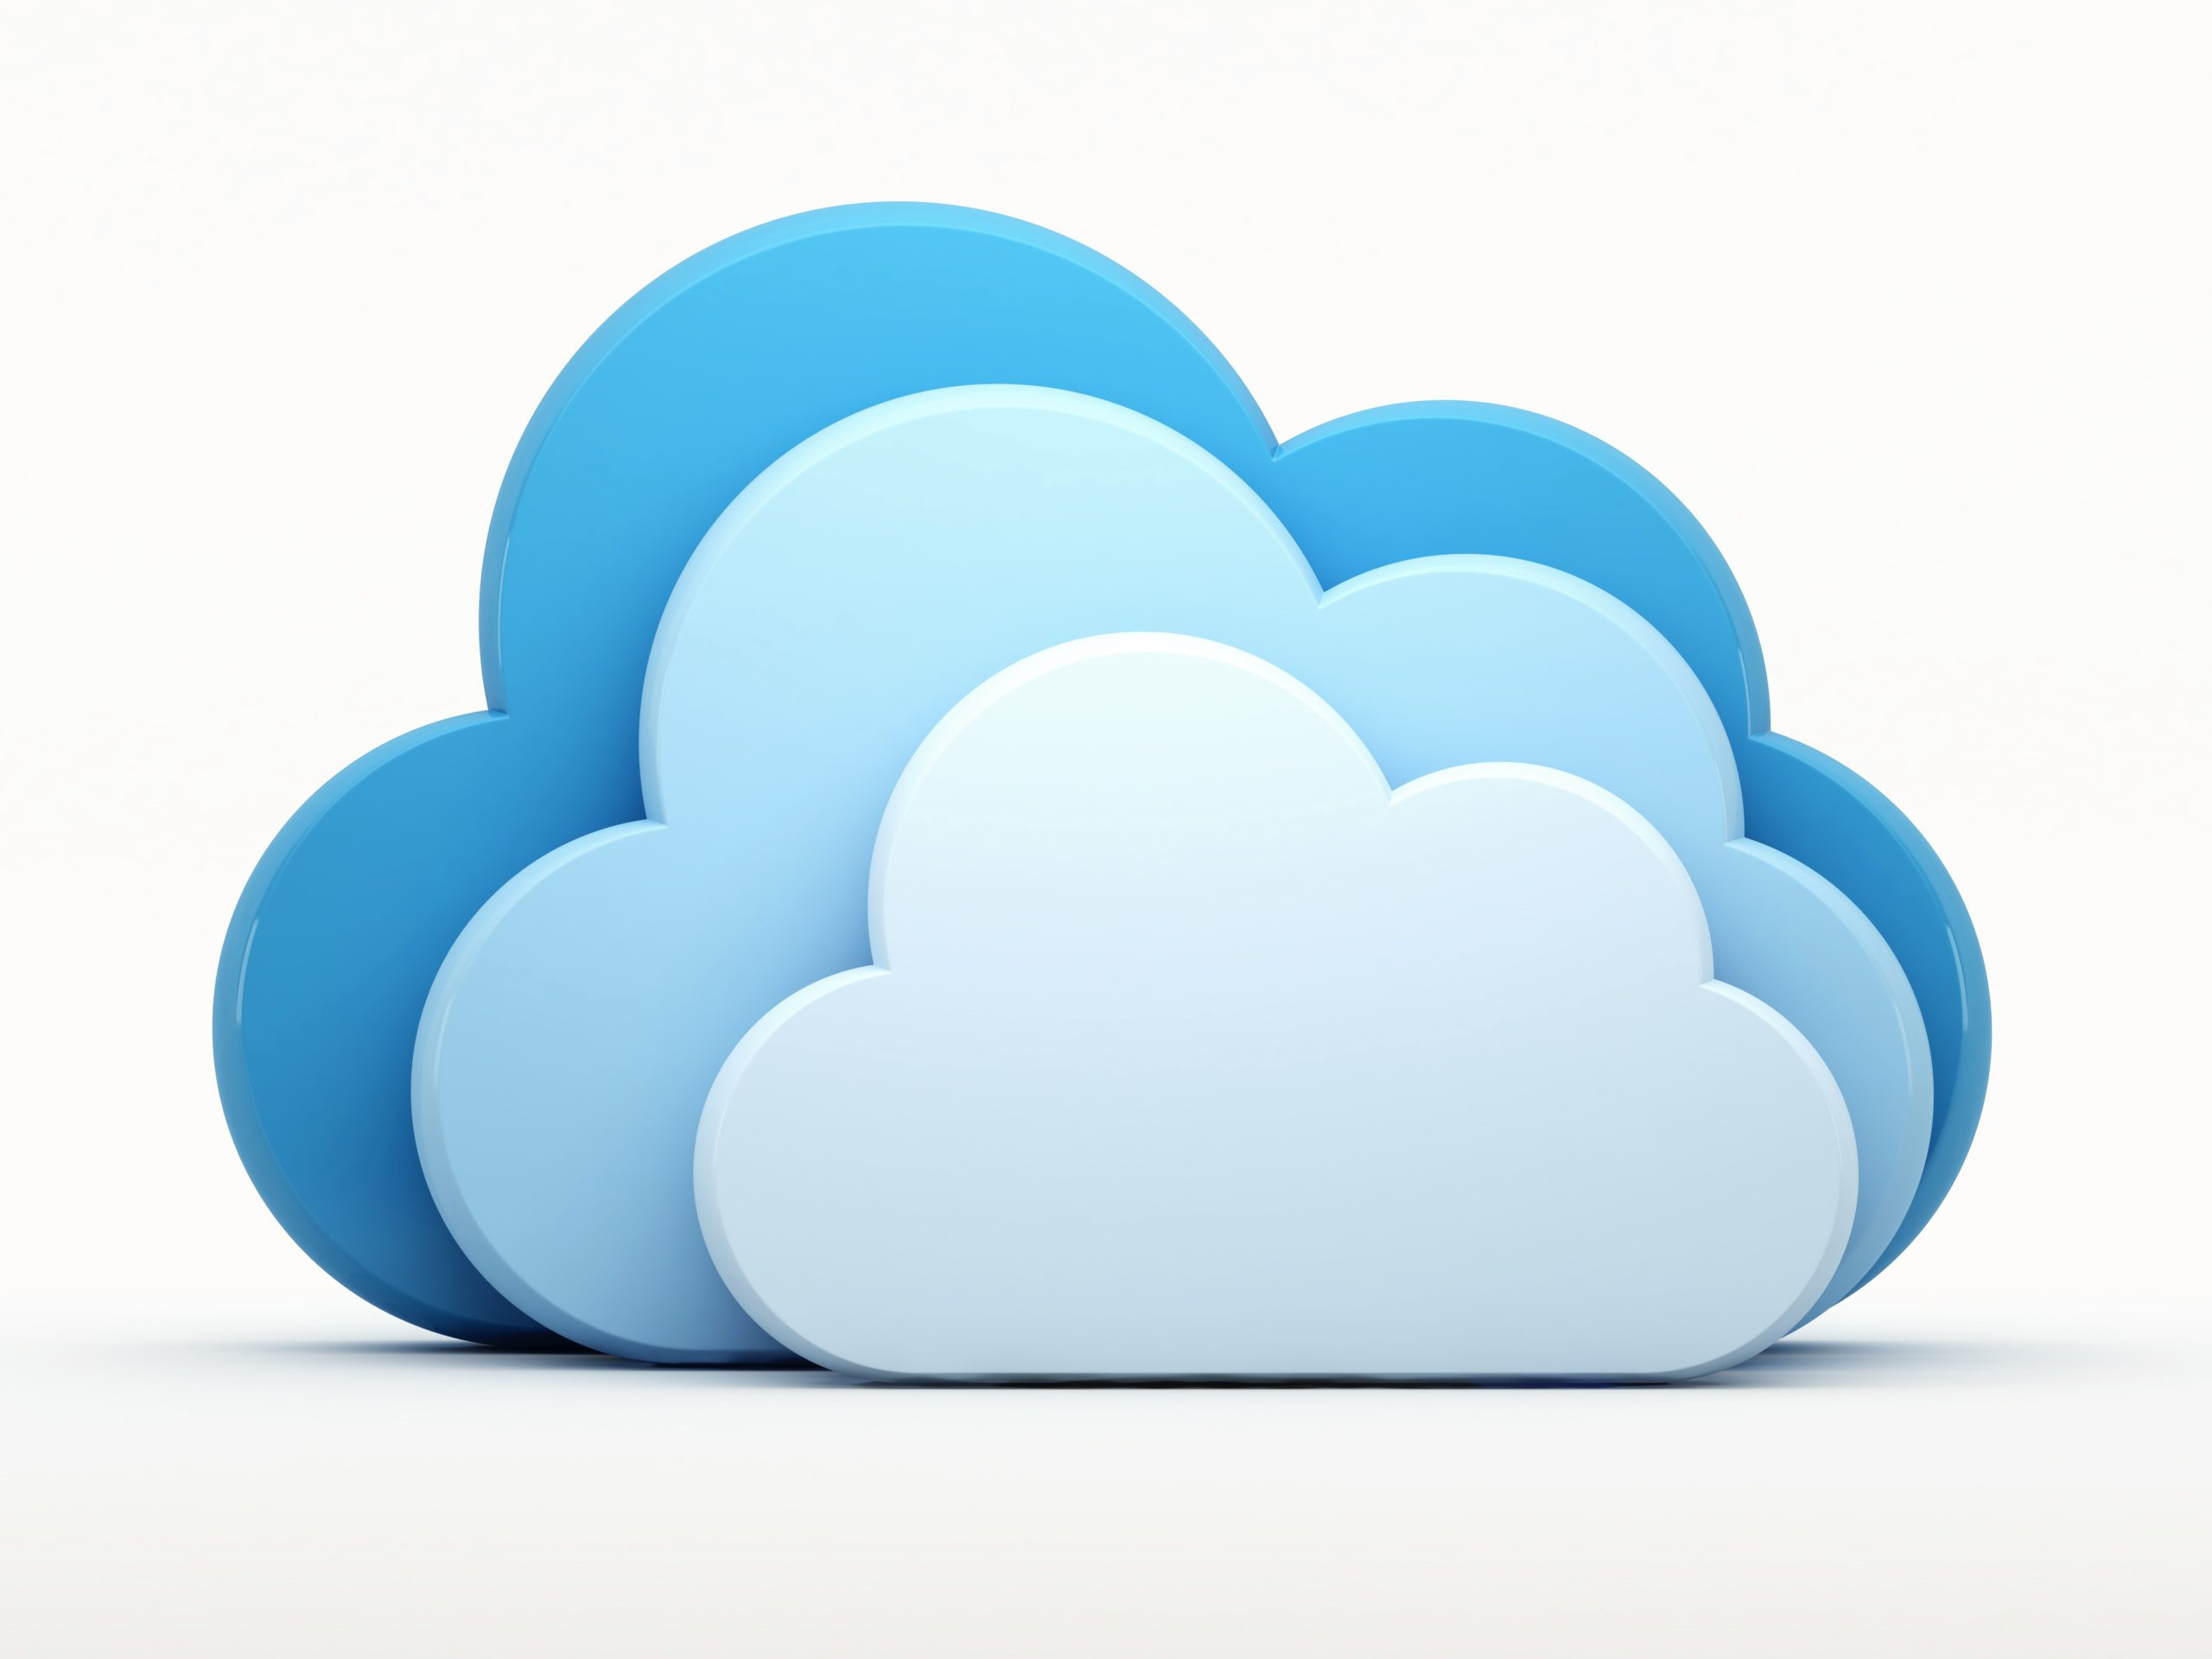 93% of businesses are worried about public cloud security